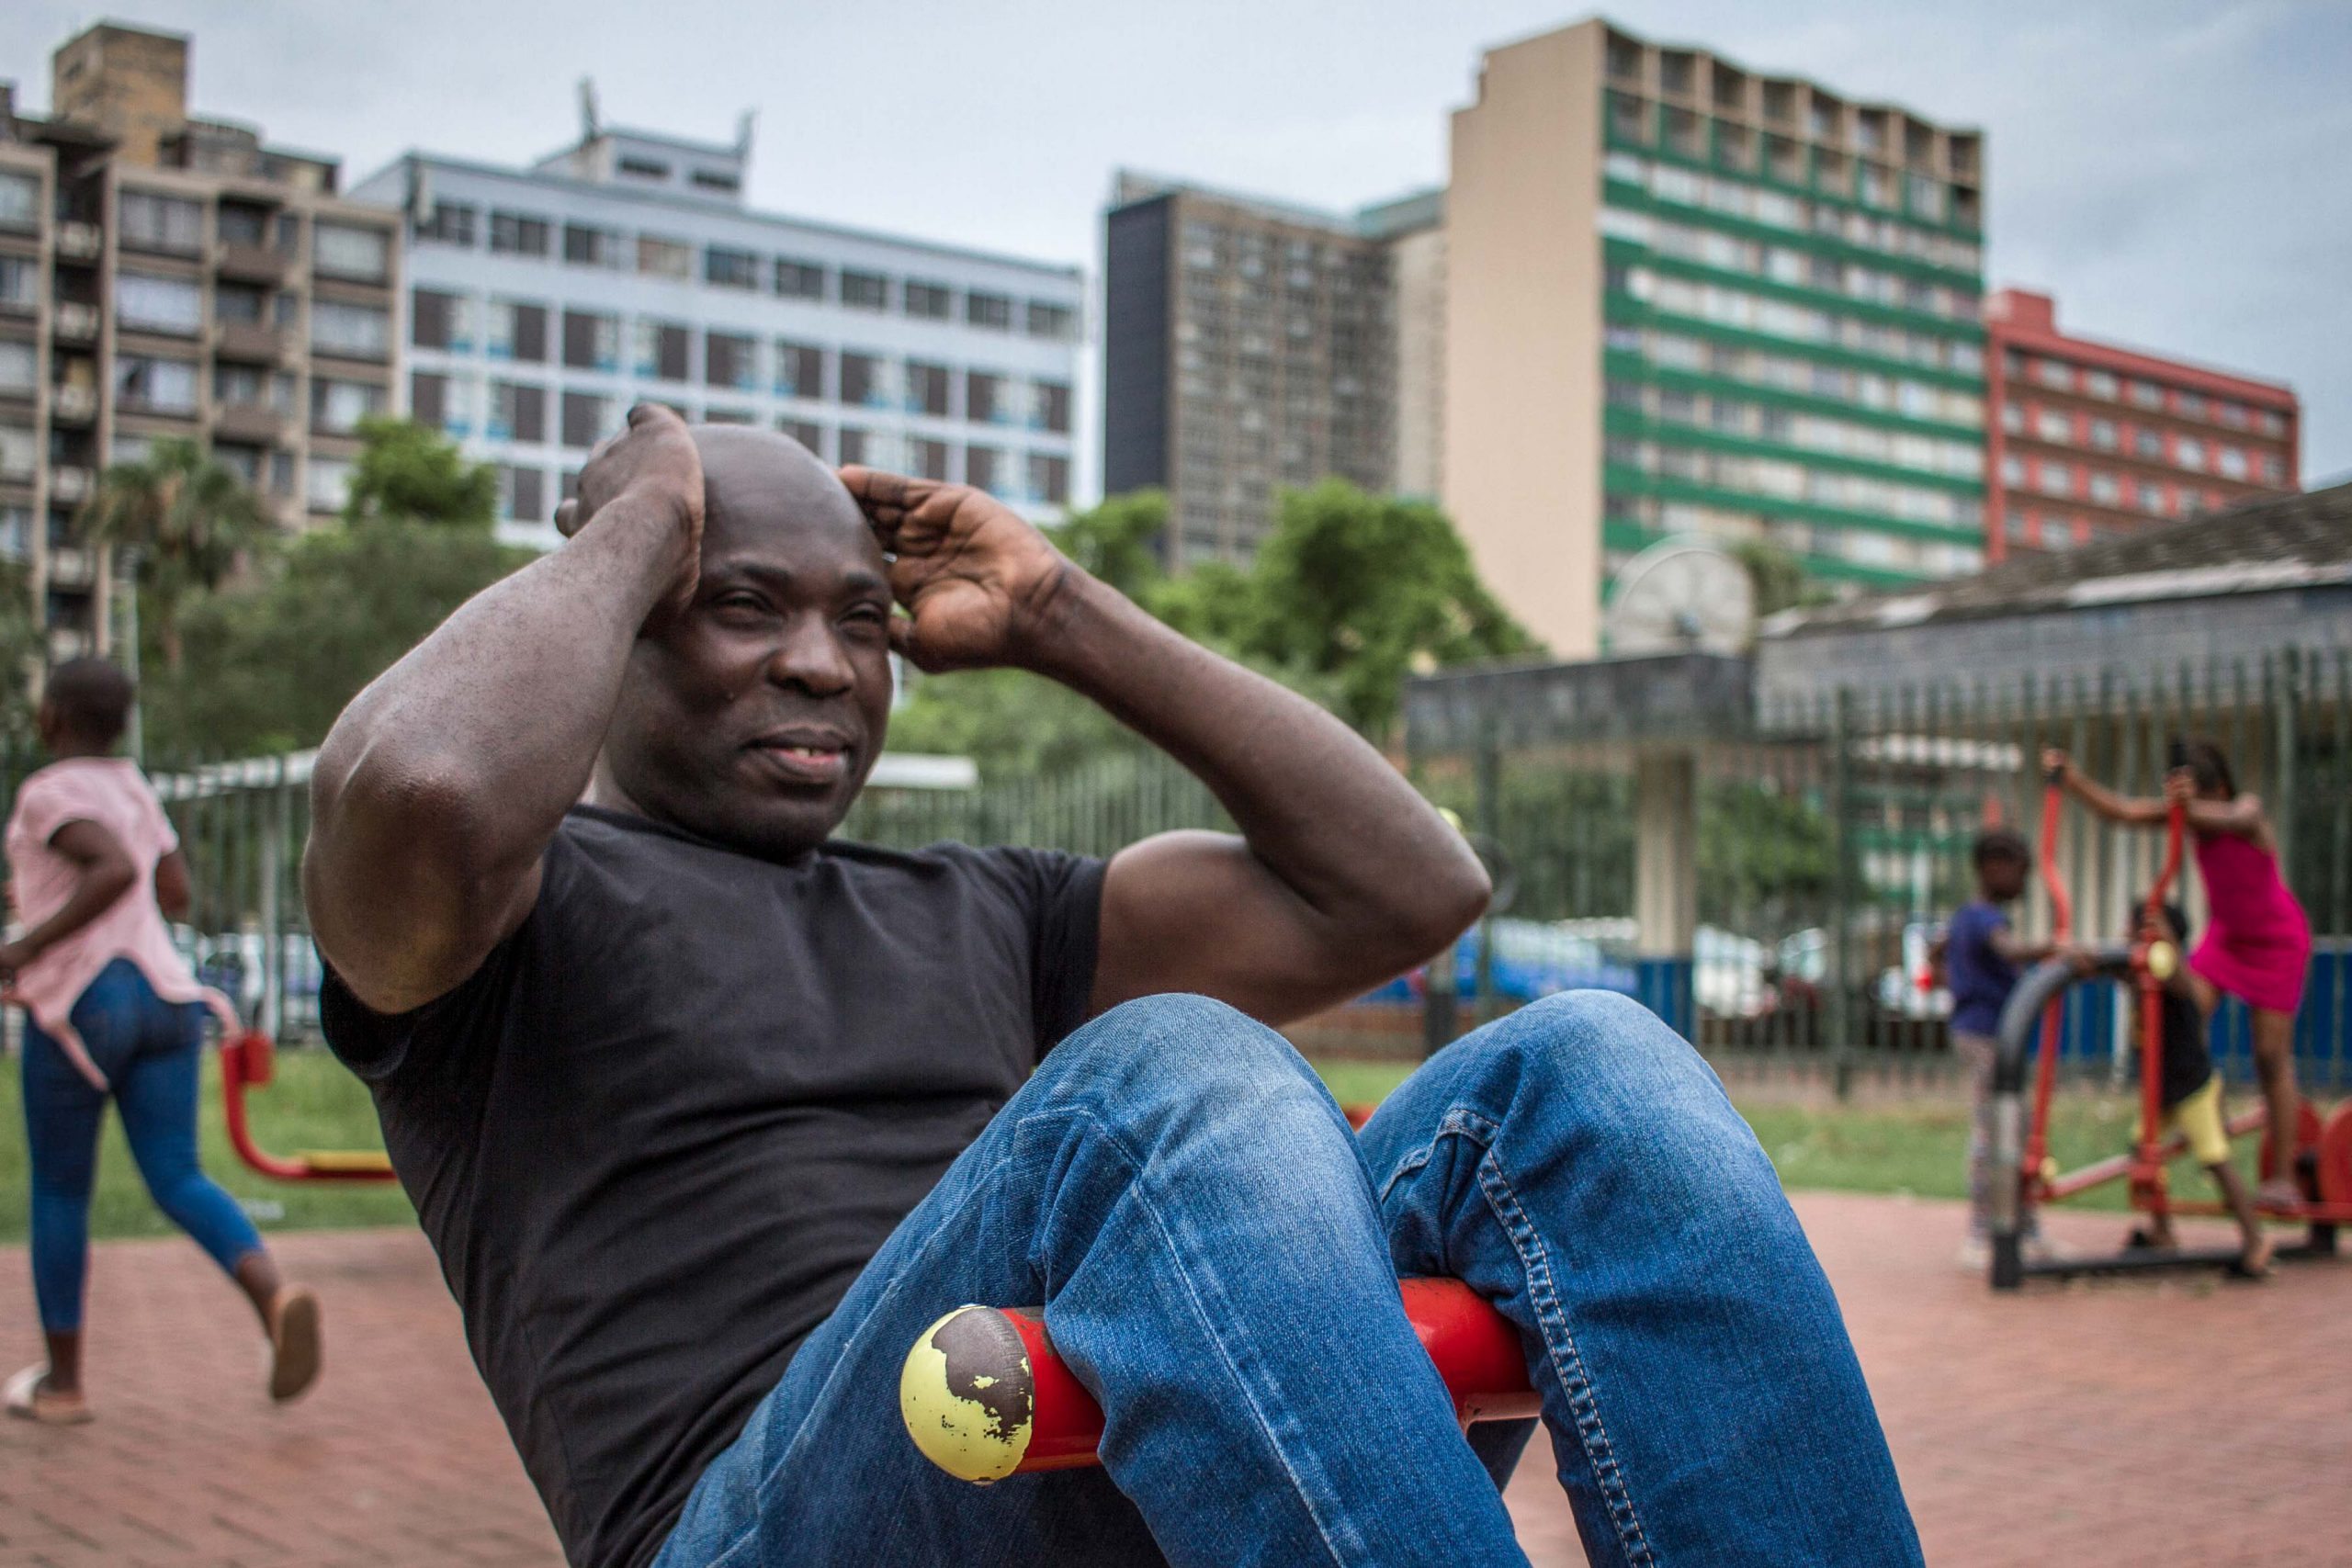 5 December 2019: Peter Mlwelwa has been using the outdoor gym in central Durban for years to maintain his fitness levels.